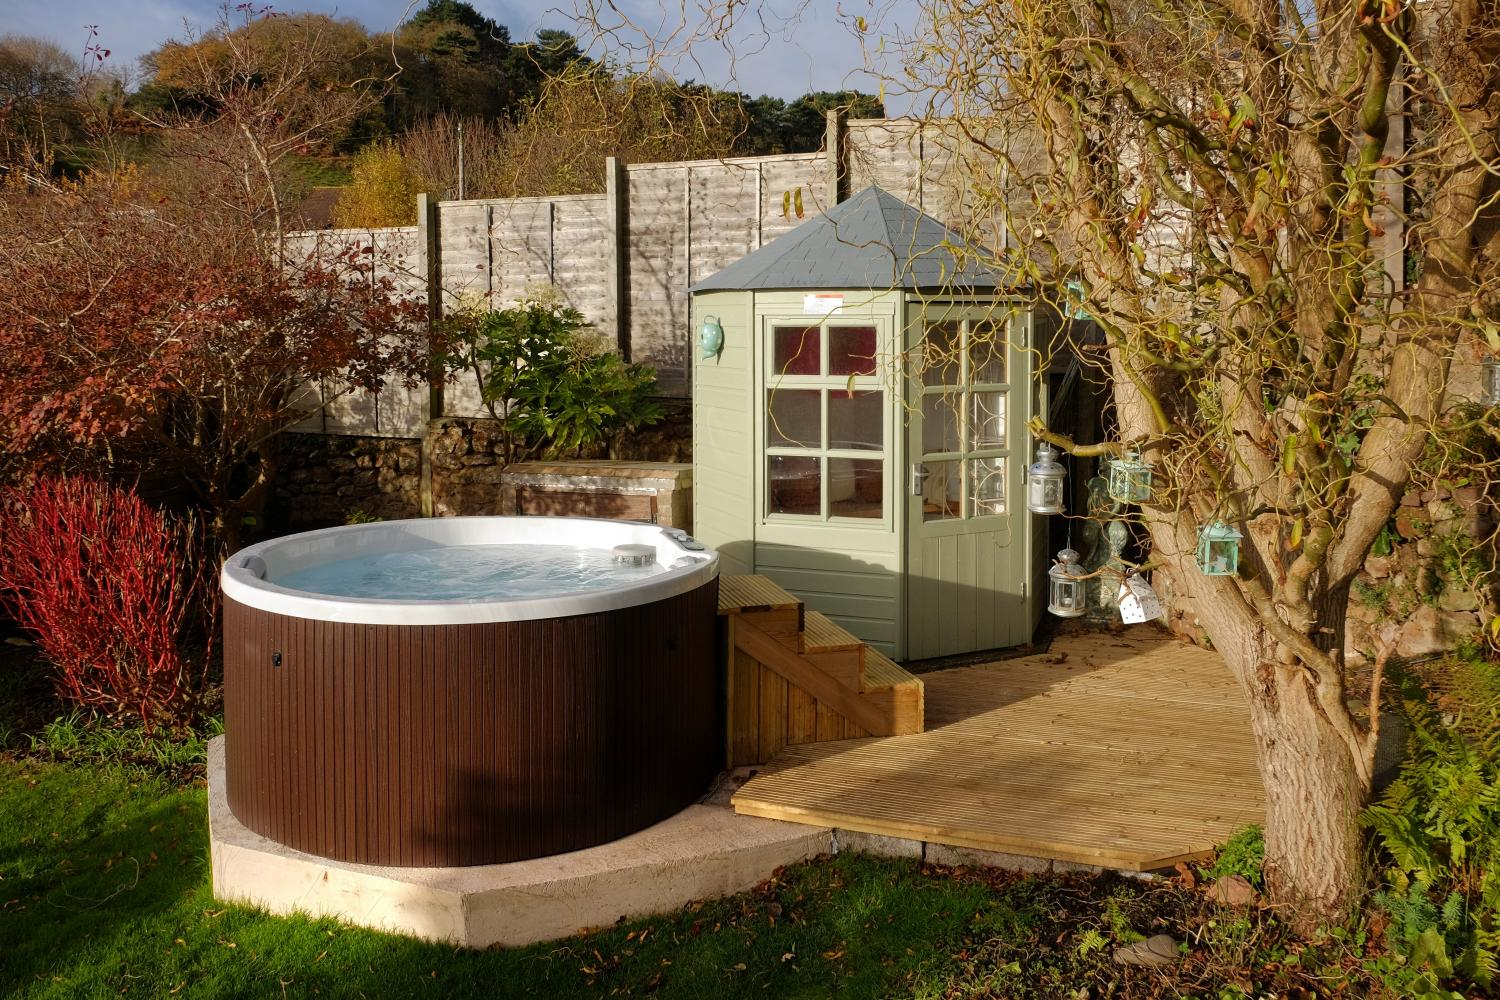 The hot tub is perfect for a soak after exploring Exmoor!